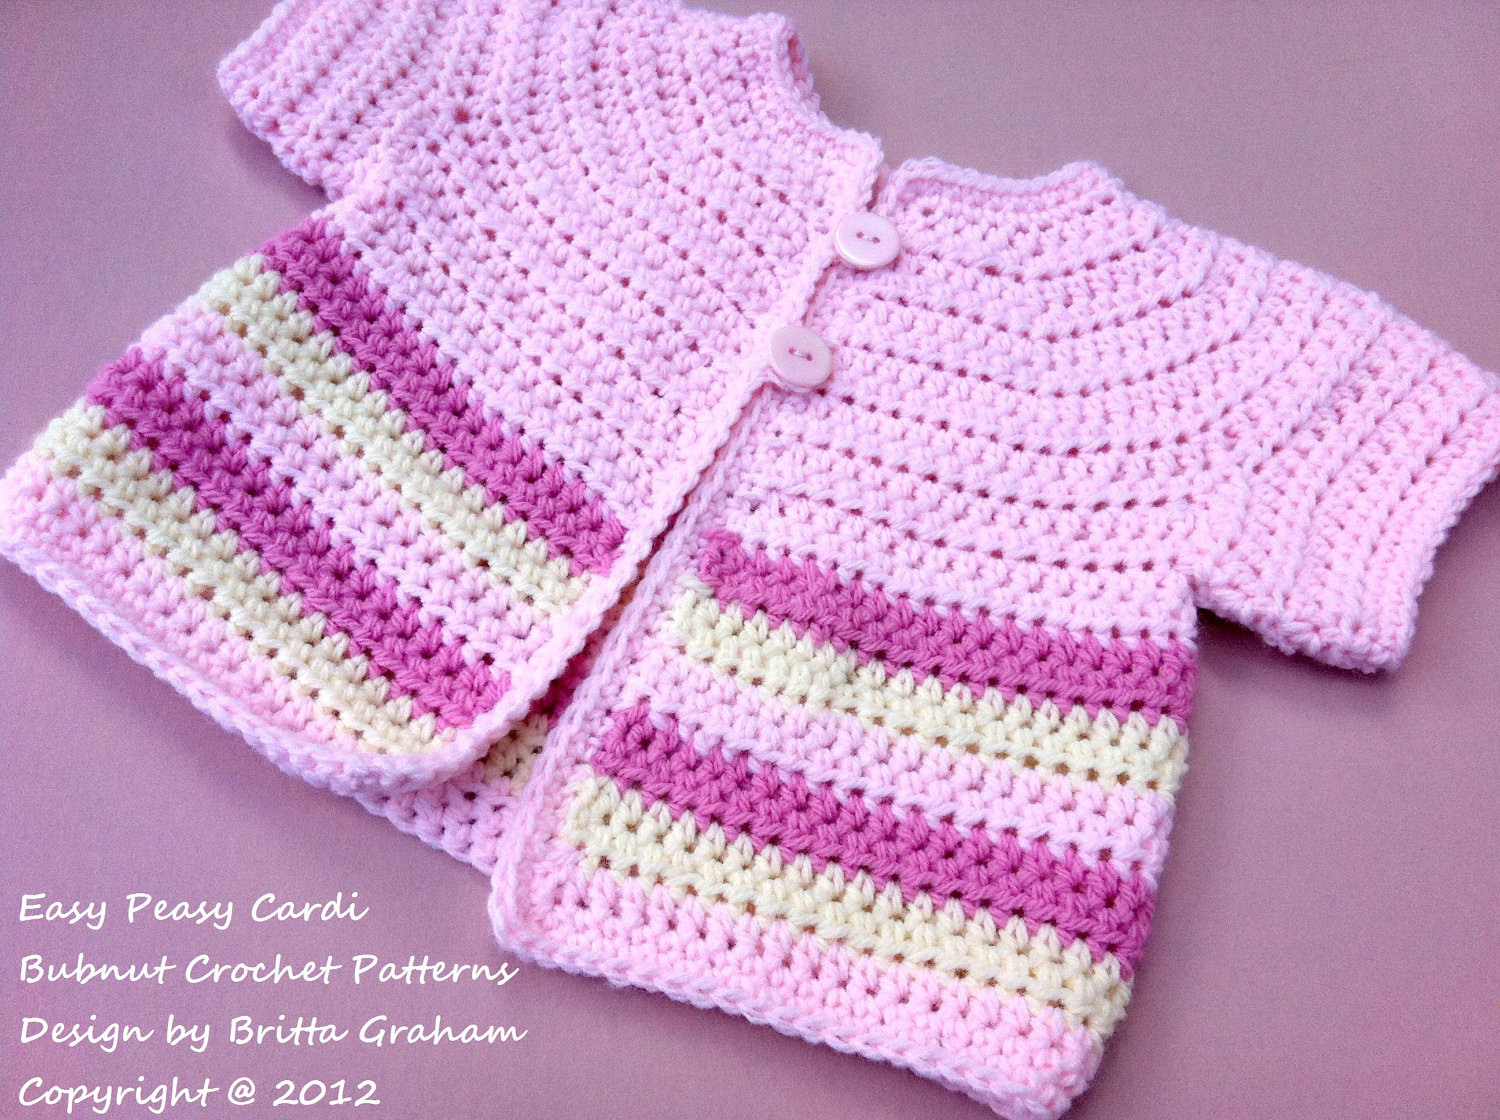 Crochet Patterns for Beginners Inspirational Beginner Crochet Baby Sweater Pattern Of Crochet Patterns for Beginners Unique Adult Slippers Crochet Pattern Pdf Easy Great for